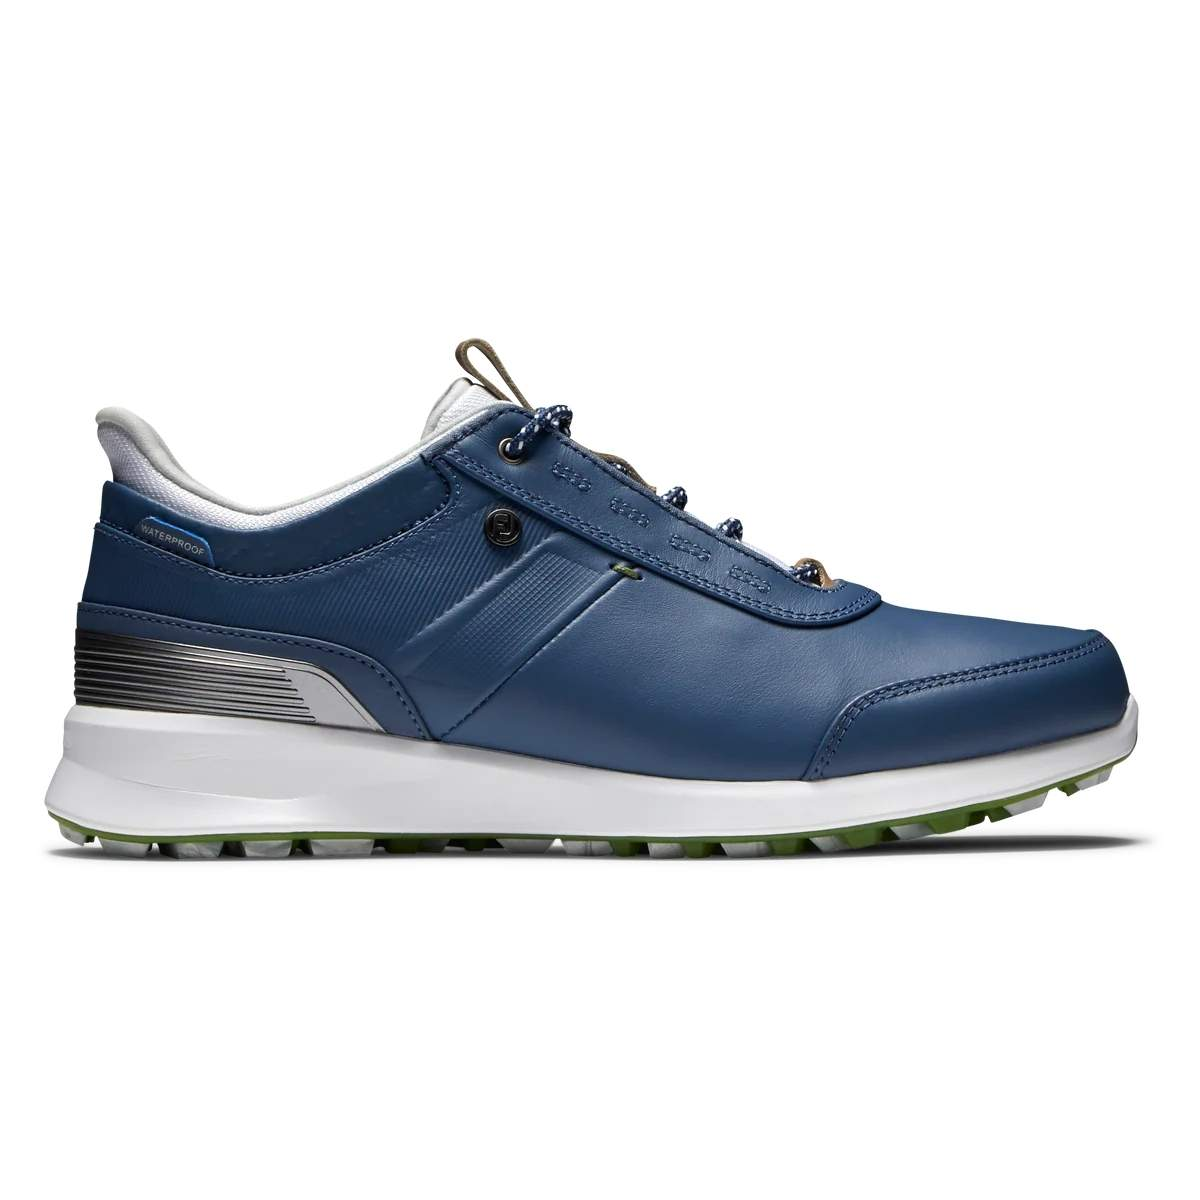 FootJoy Women's Stratos Golf Shoe - Teal 90112